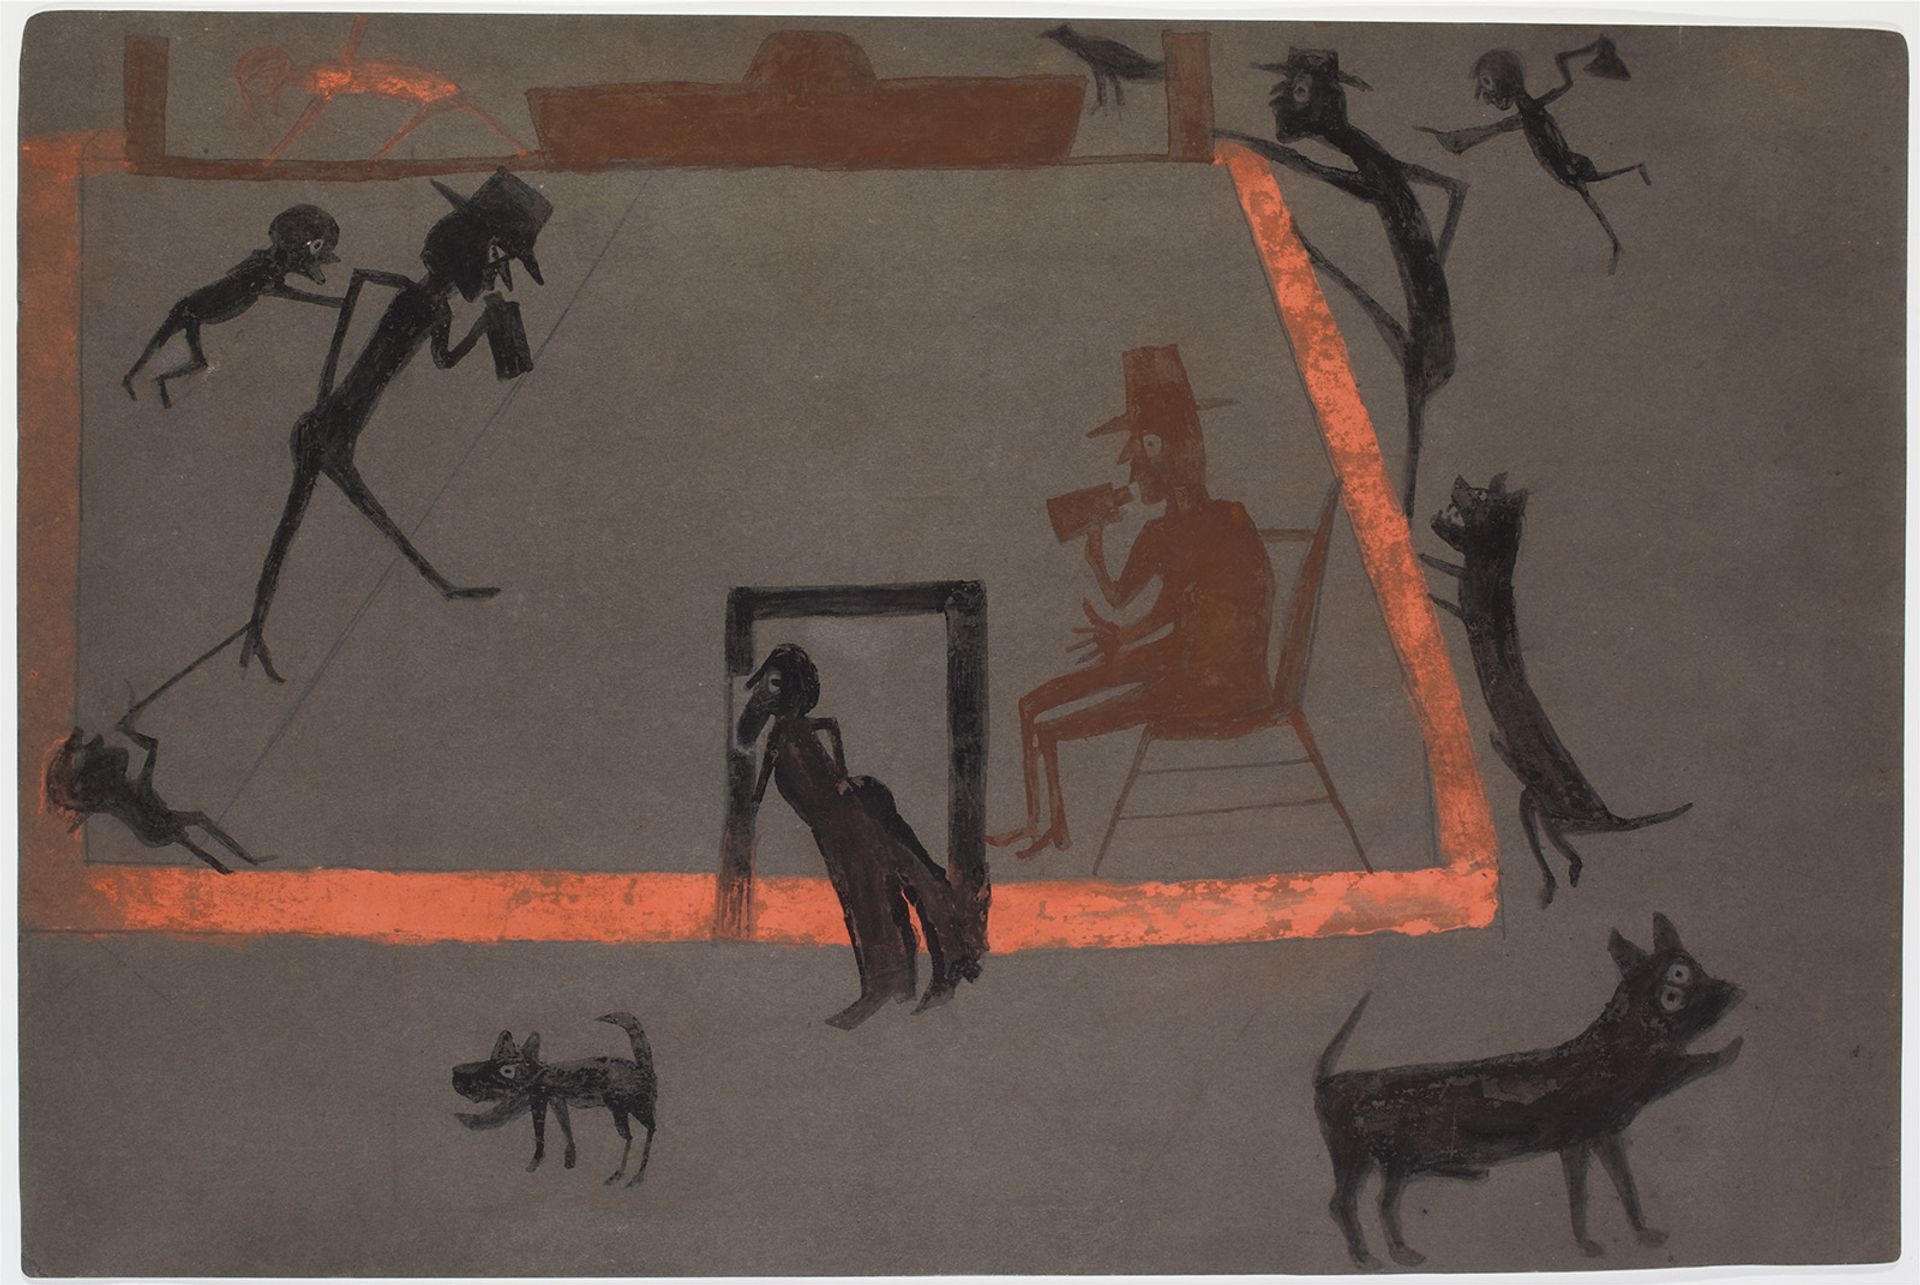 Bill Traylor, Men Drinking, Boys Tormenting, Dogs Barking, (around 1939-1942) Collection of Jill and Sheldon Bonovitz, Promised Gift to the Philadelphia Museum of Art